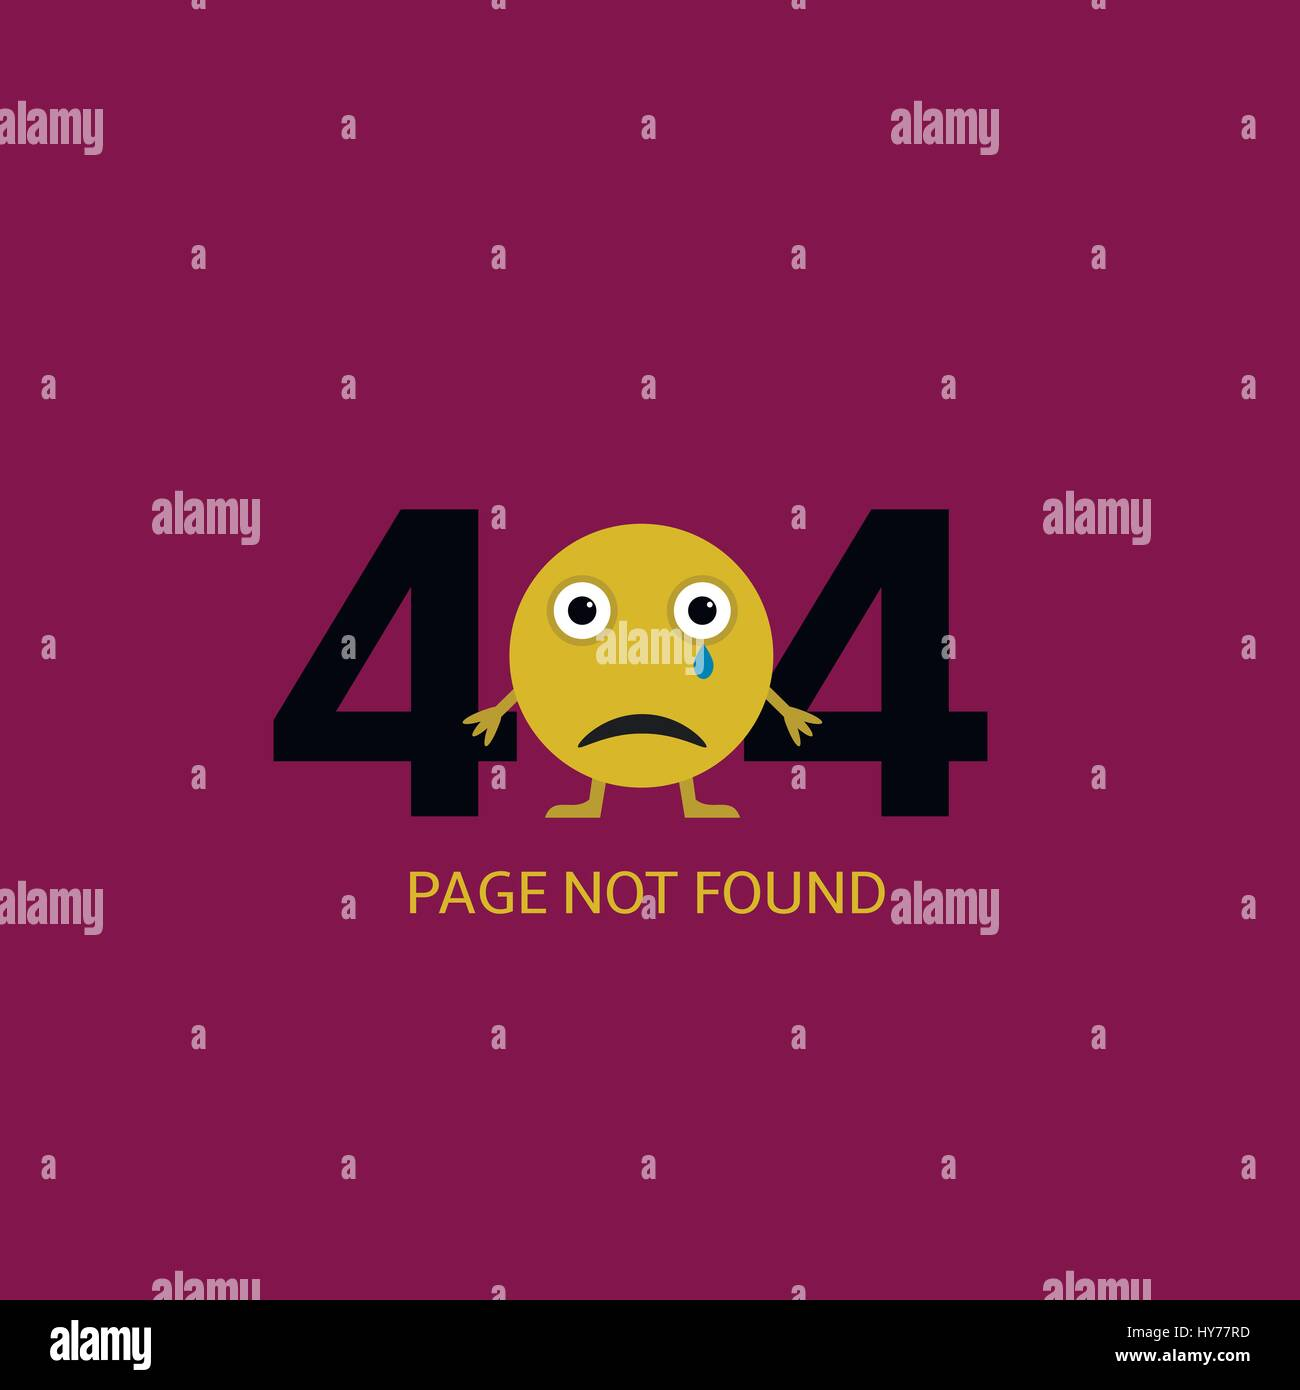 Page not found - Stock Image